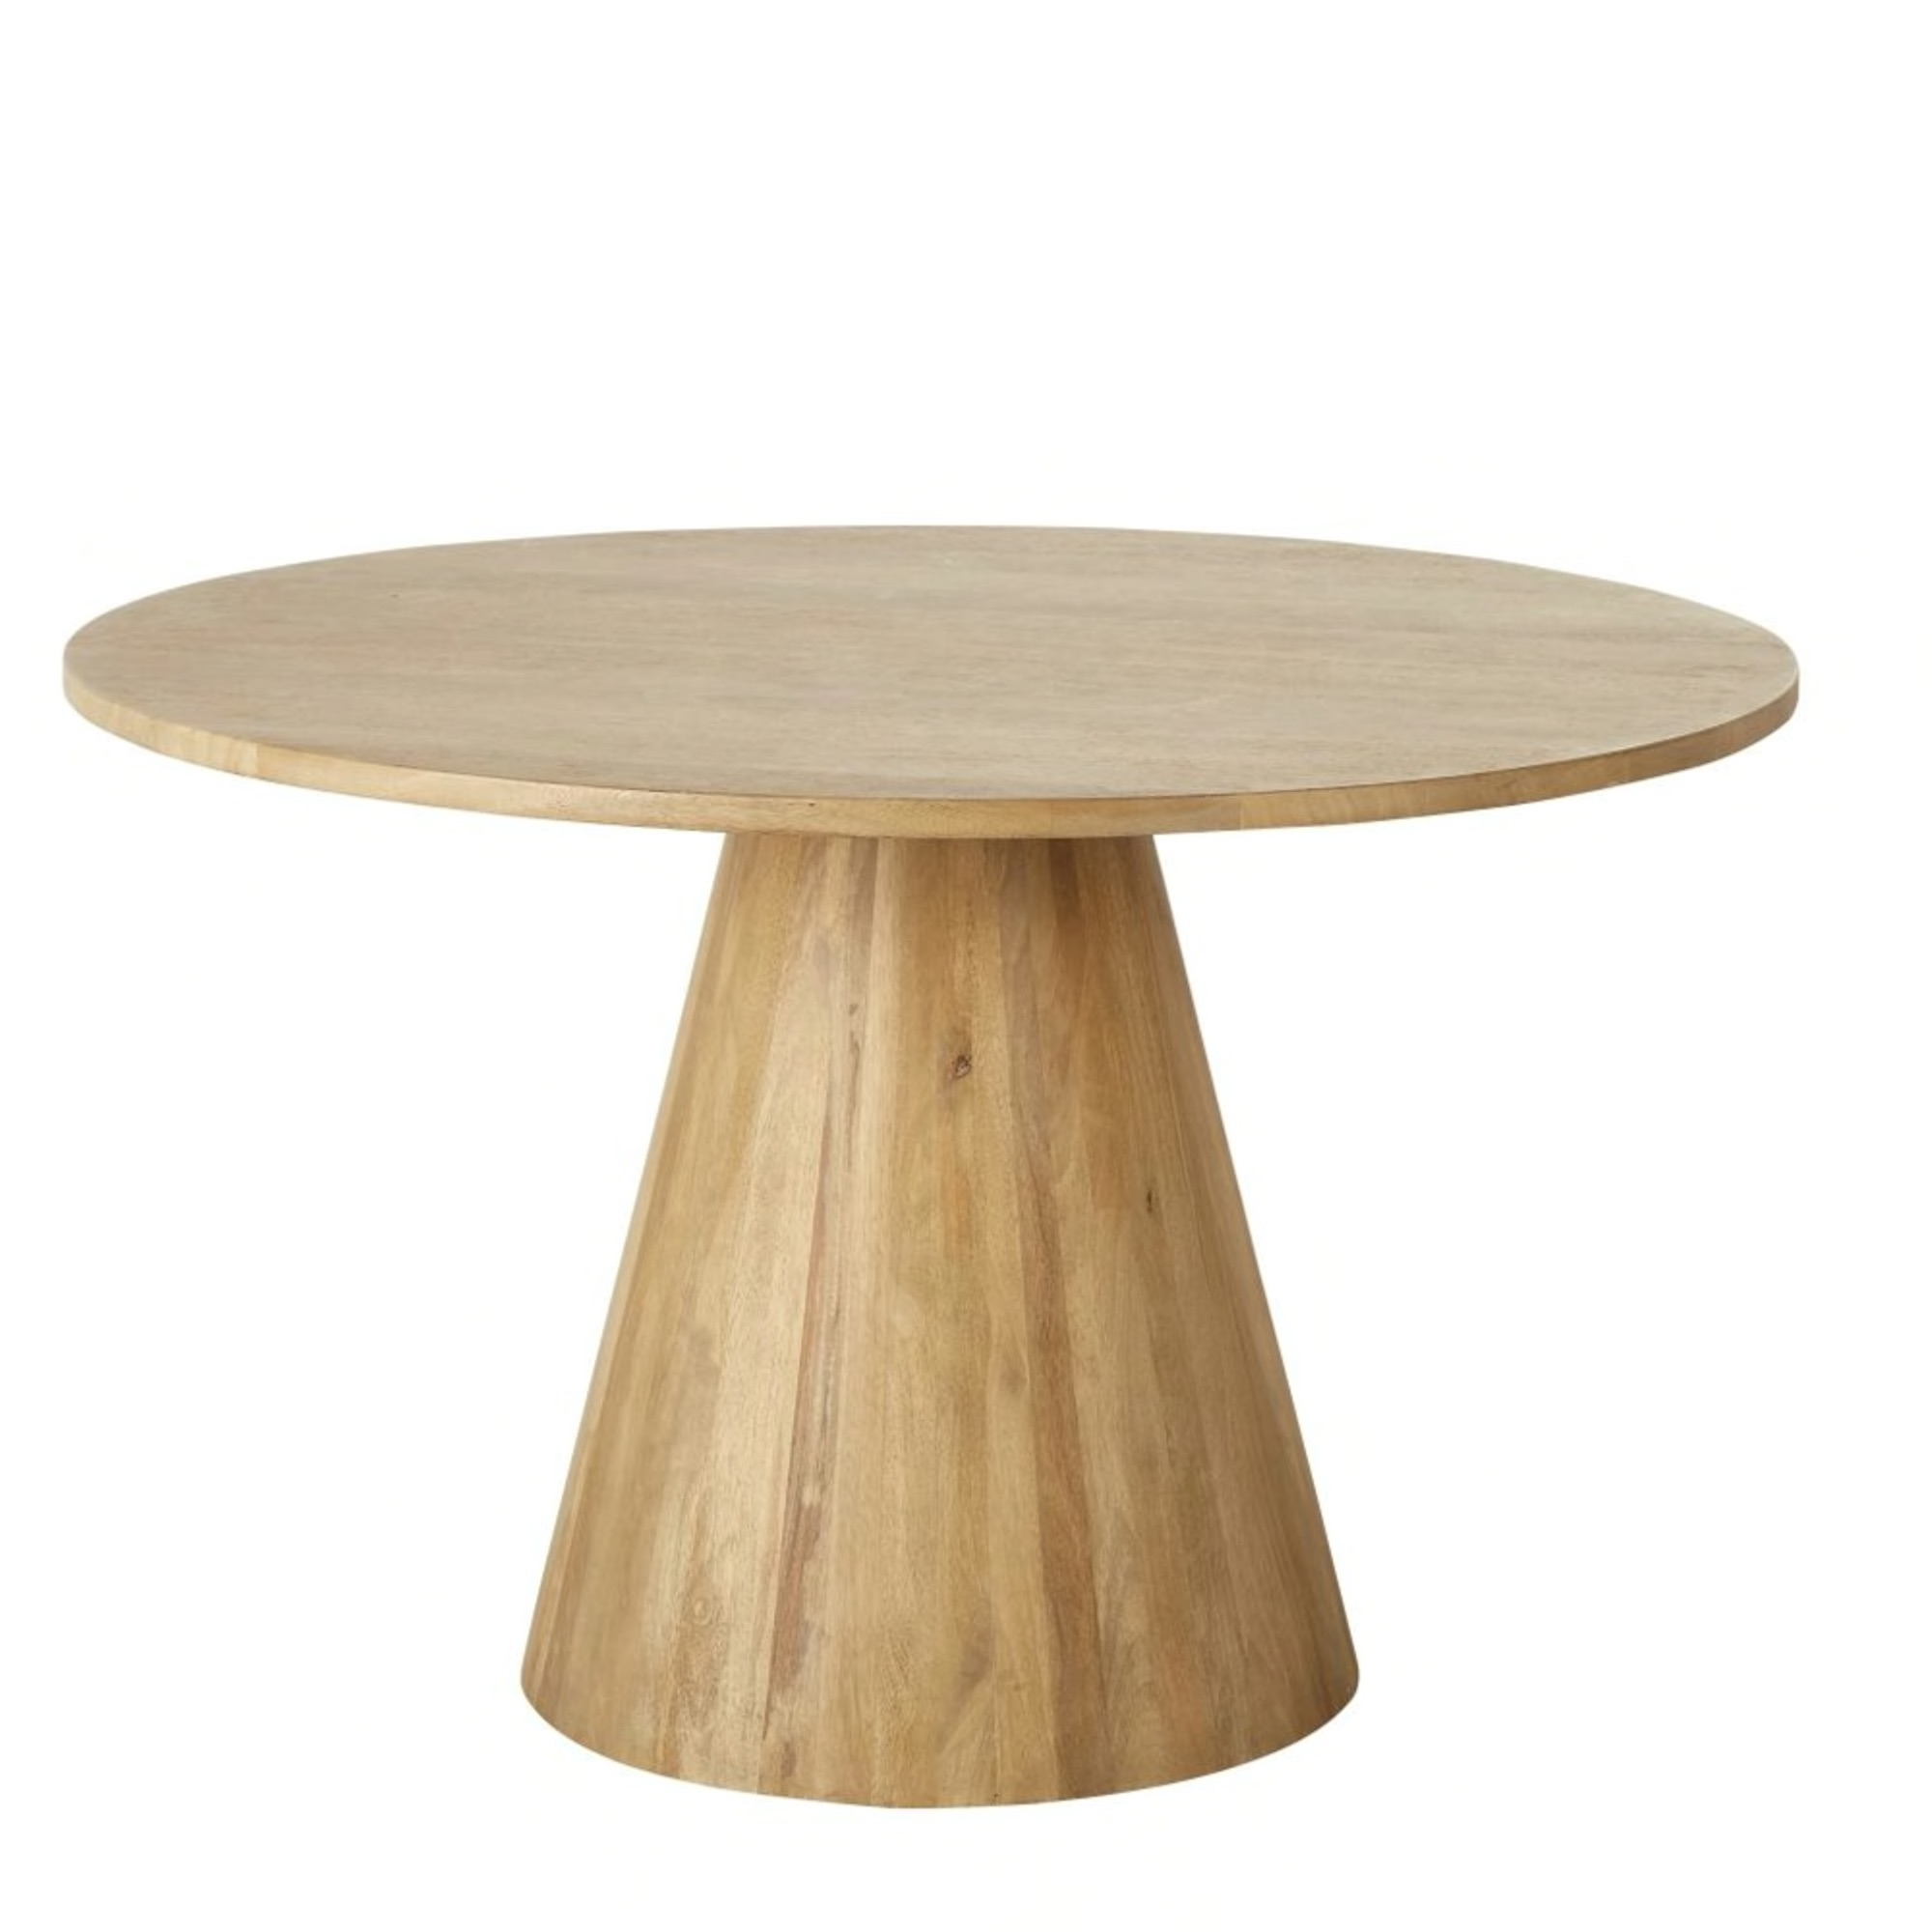 Round Whitewashed Solid Mango Wood 5/6-Seater Dining Table D120 £648.50